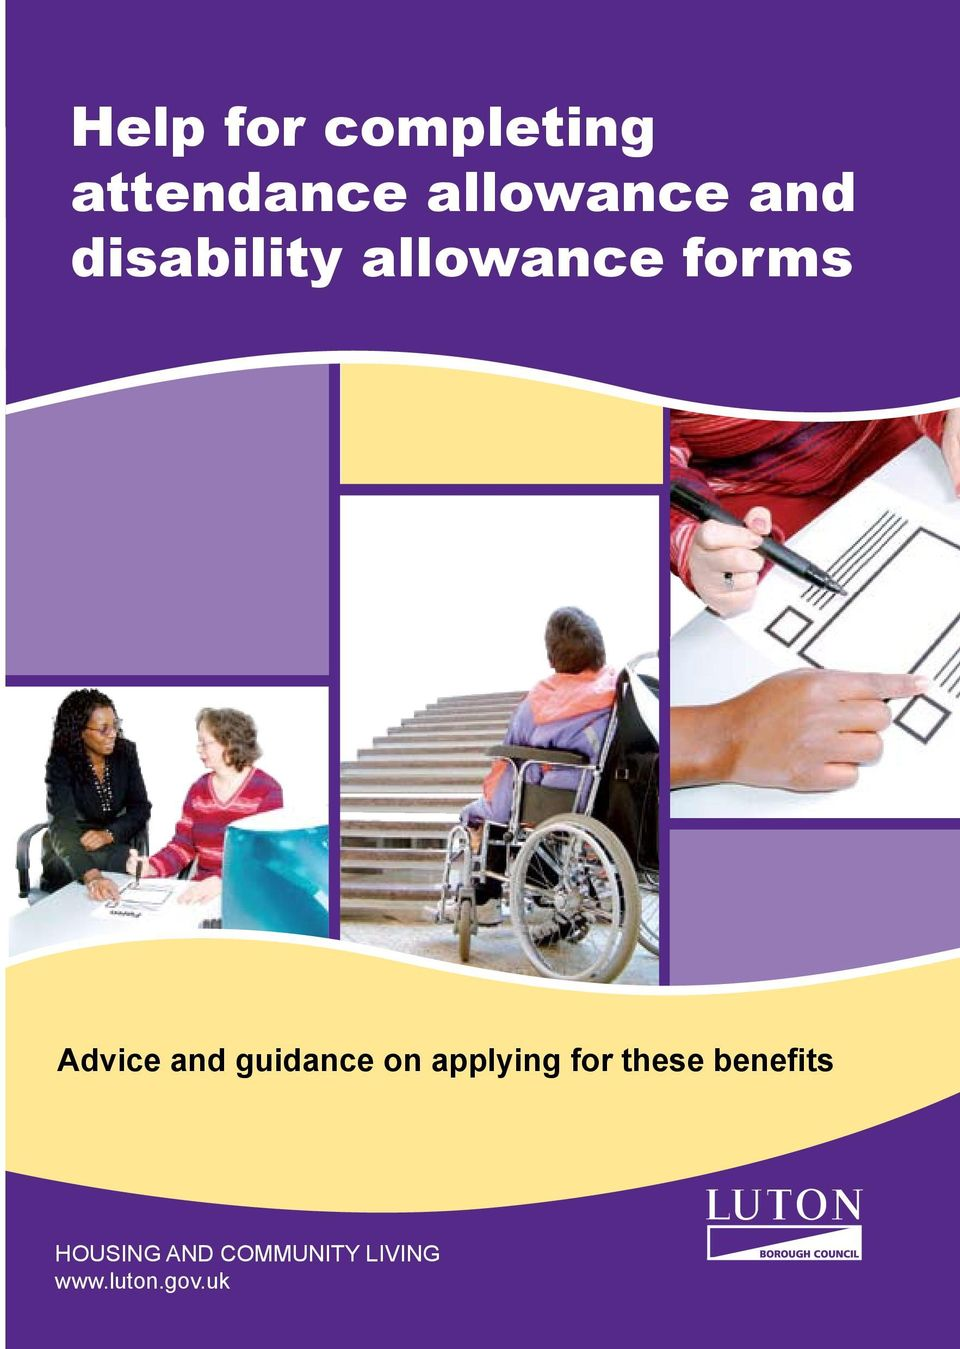 guidance on applying for these benefits